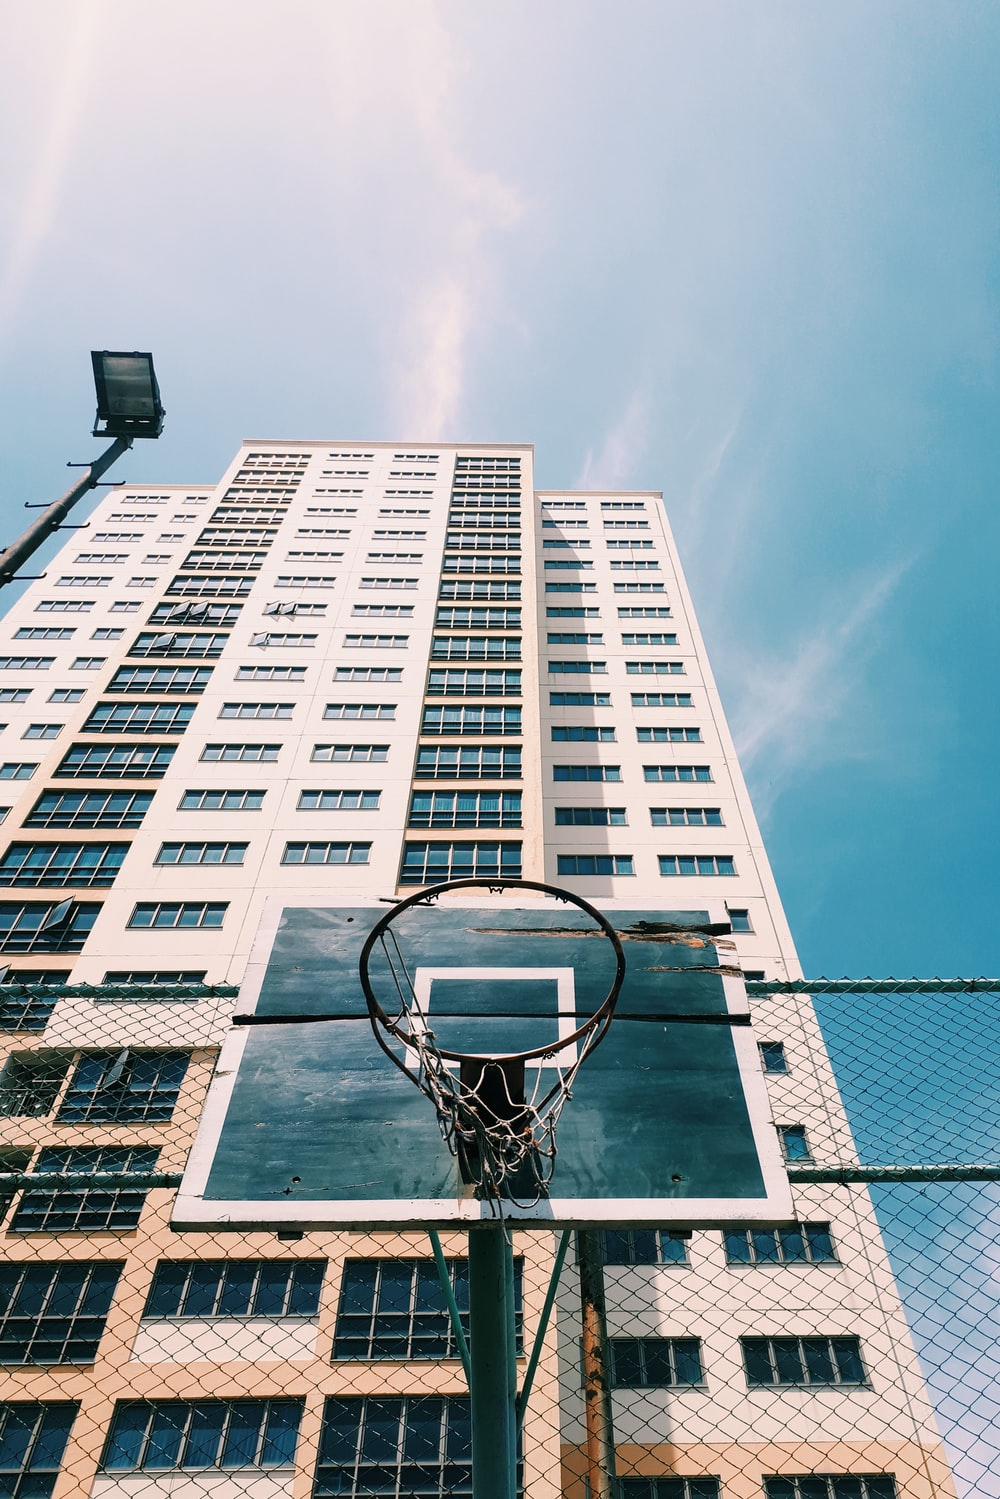 low angle-photography of black and white basketball hoop behind high-rise building during daytime